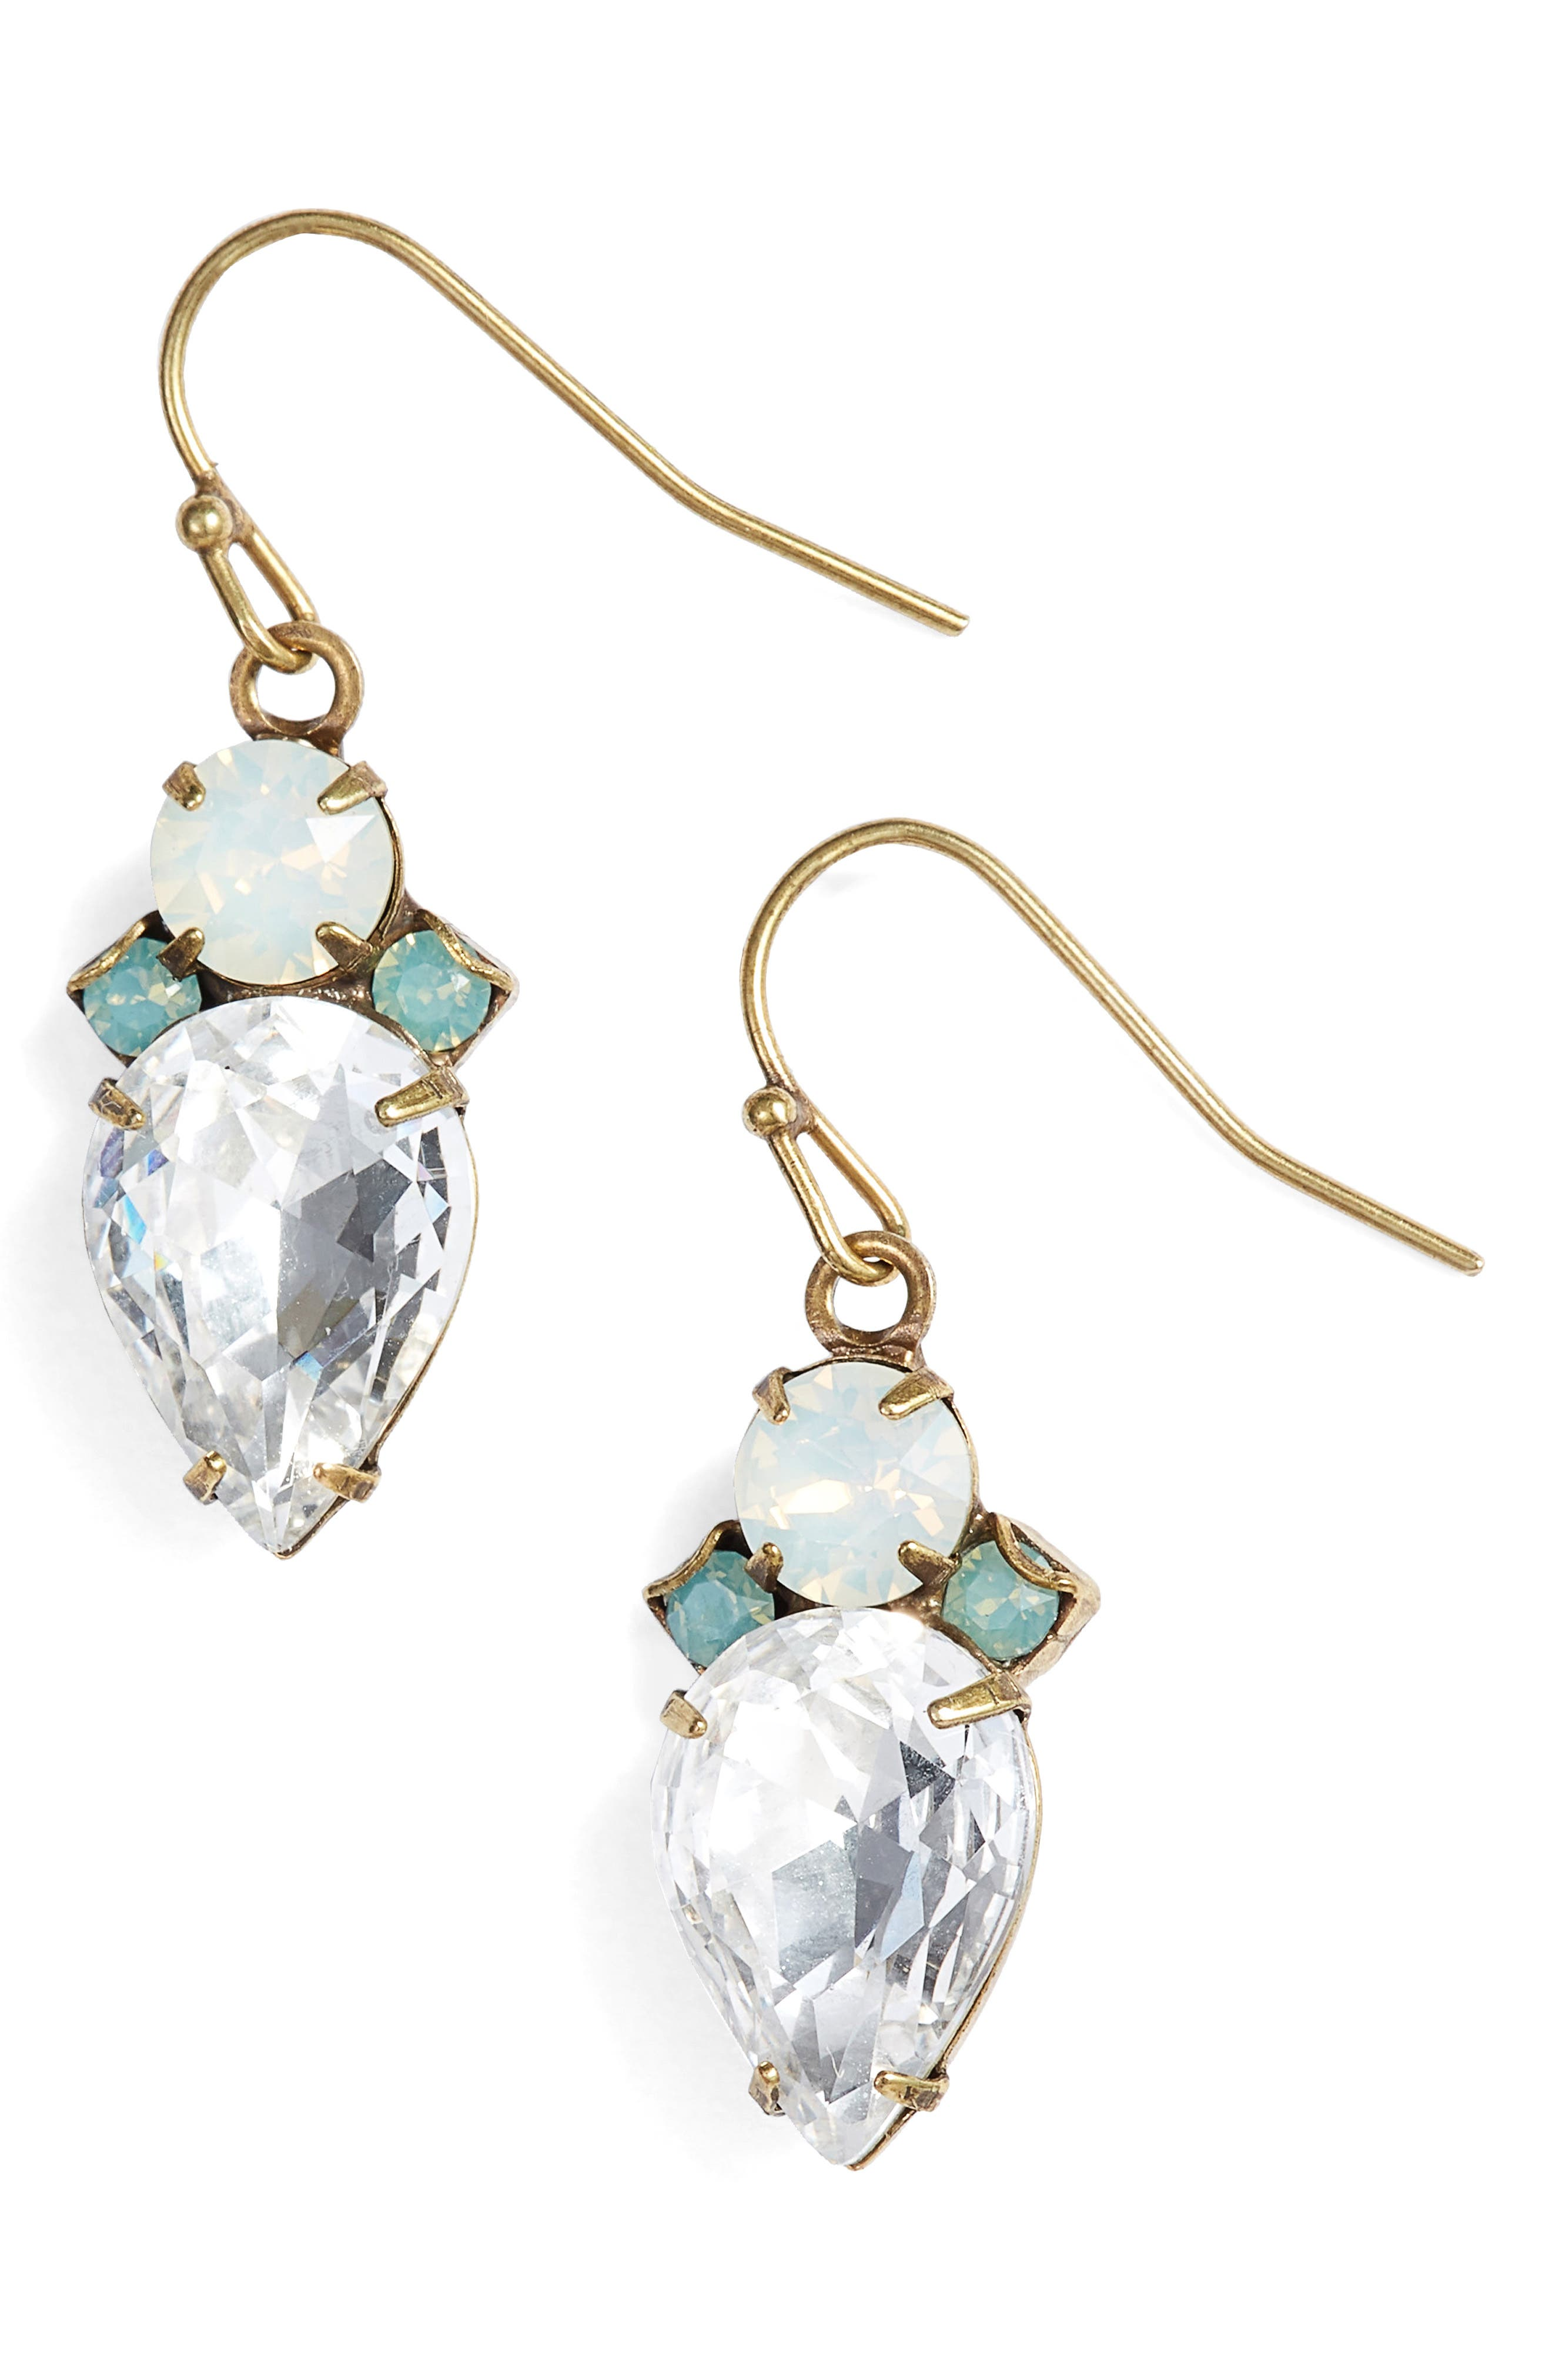 Tearing Up Crystal Drop Earrings,                             Main thumbnail 1, color,                             Clear